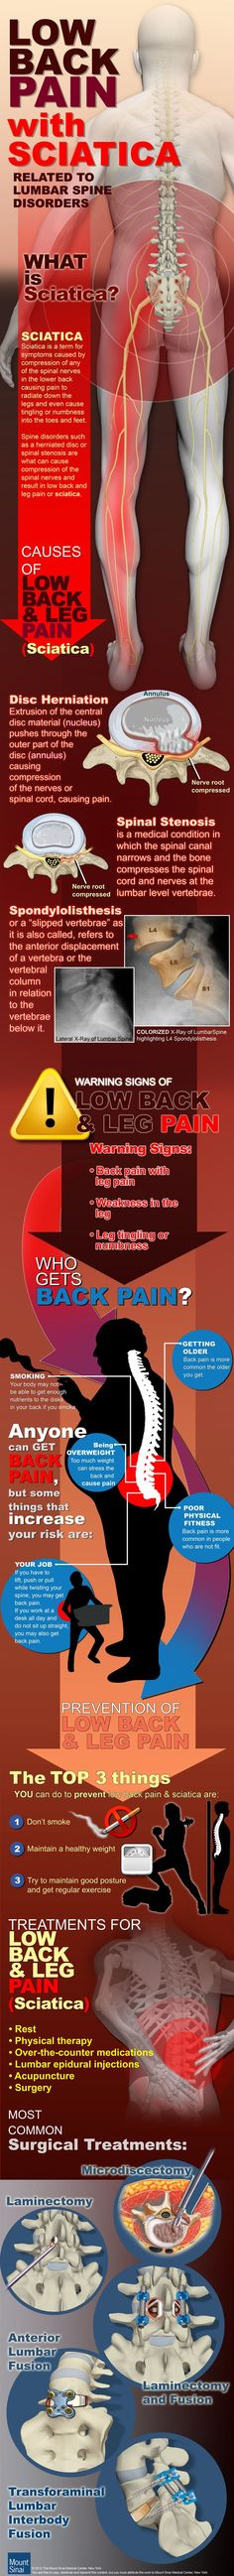 .Low back pain with Sciatica!  Remember! You only have One Spine, so take Good Care of It! An important reminder from http://www.familychiropractic.com.sg/